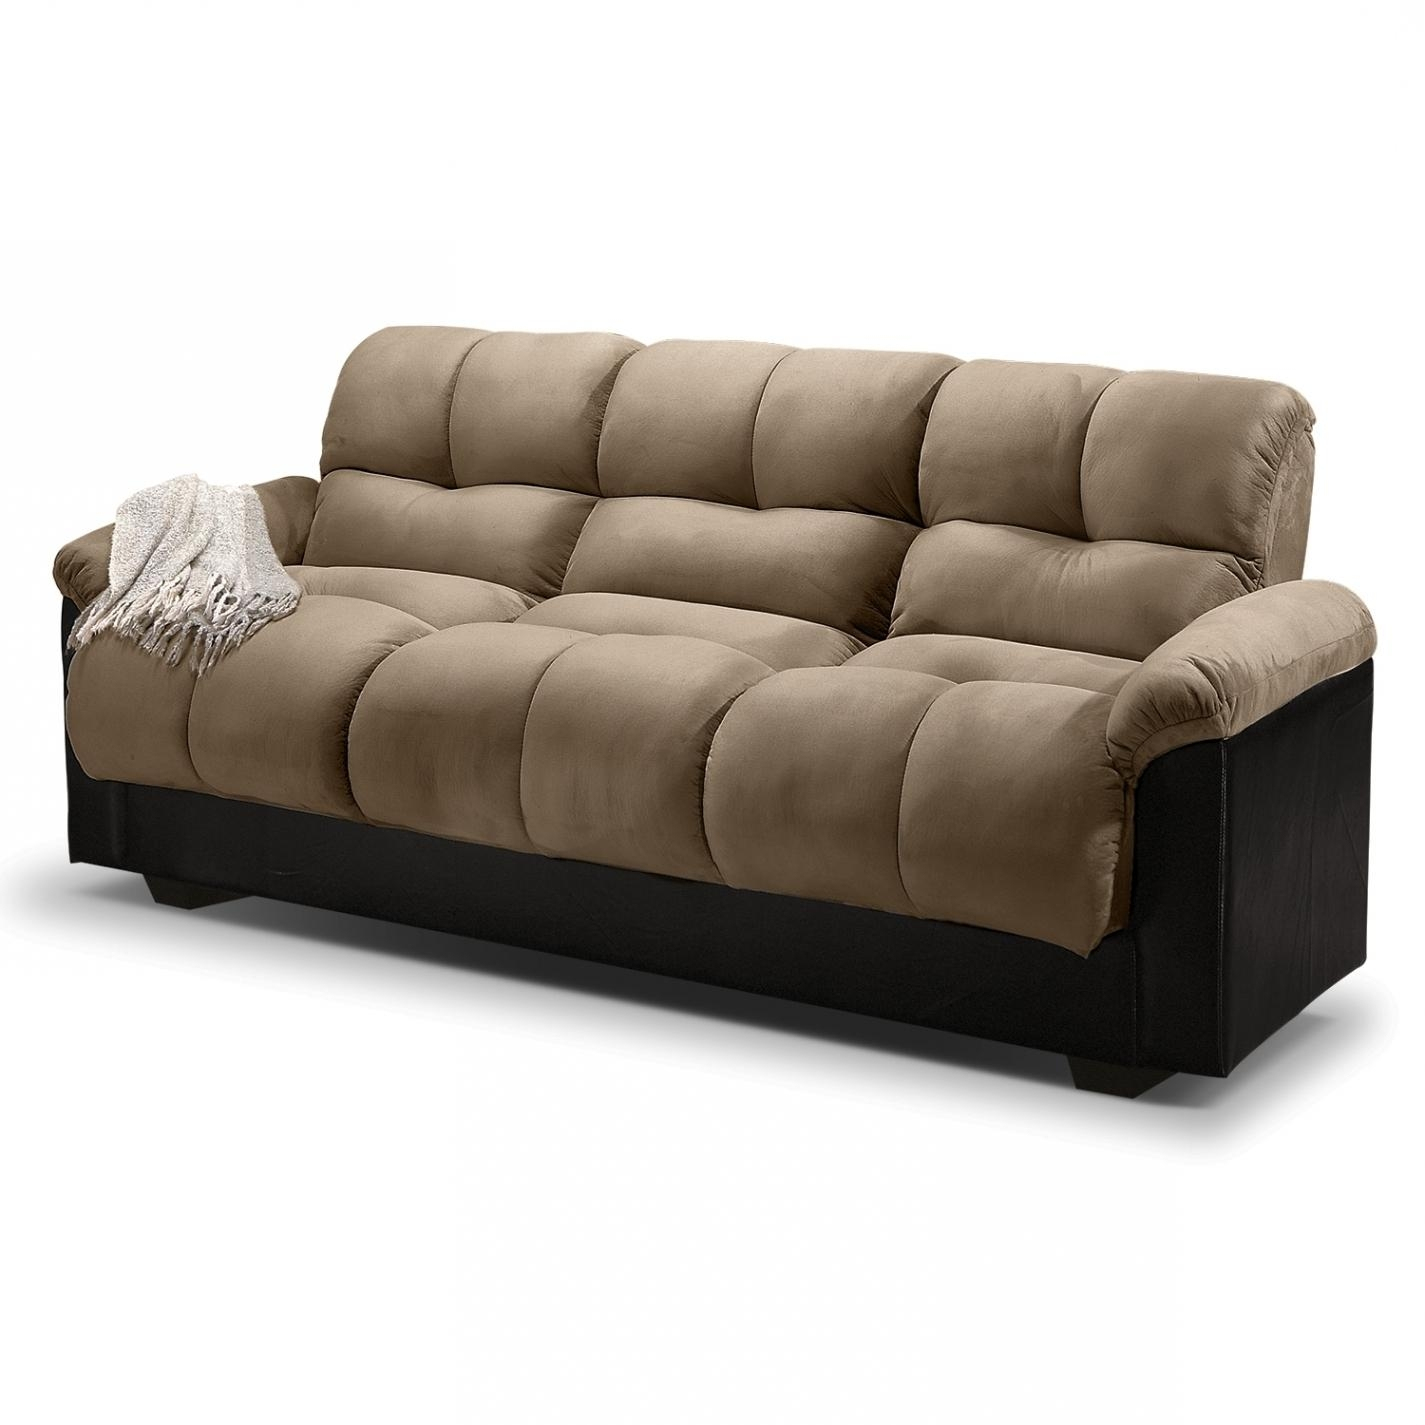 Cheap Futon Sofa Bed (Image 3 of 20)